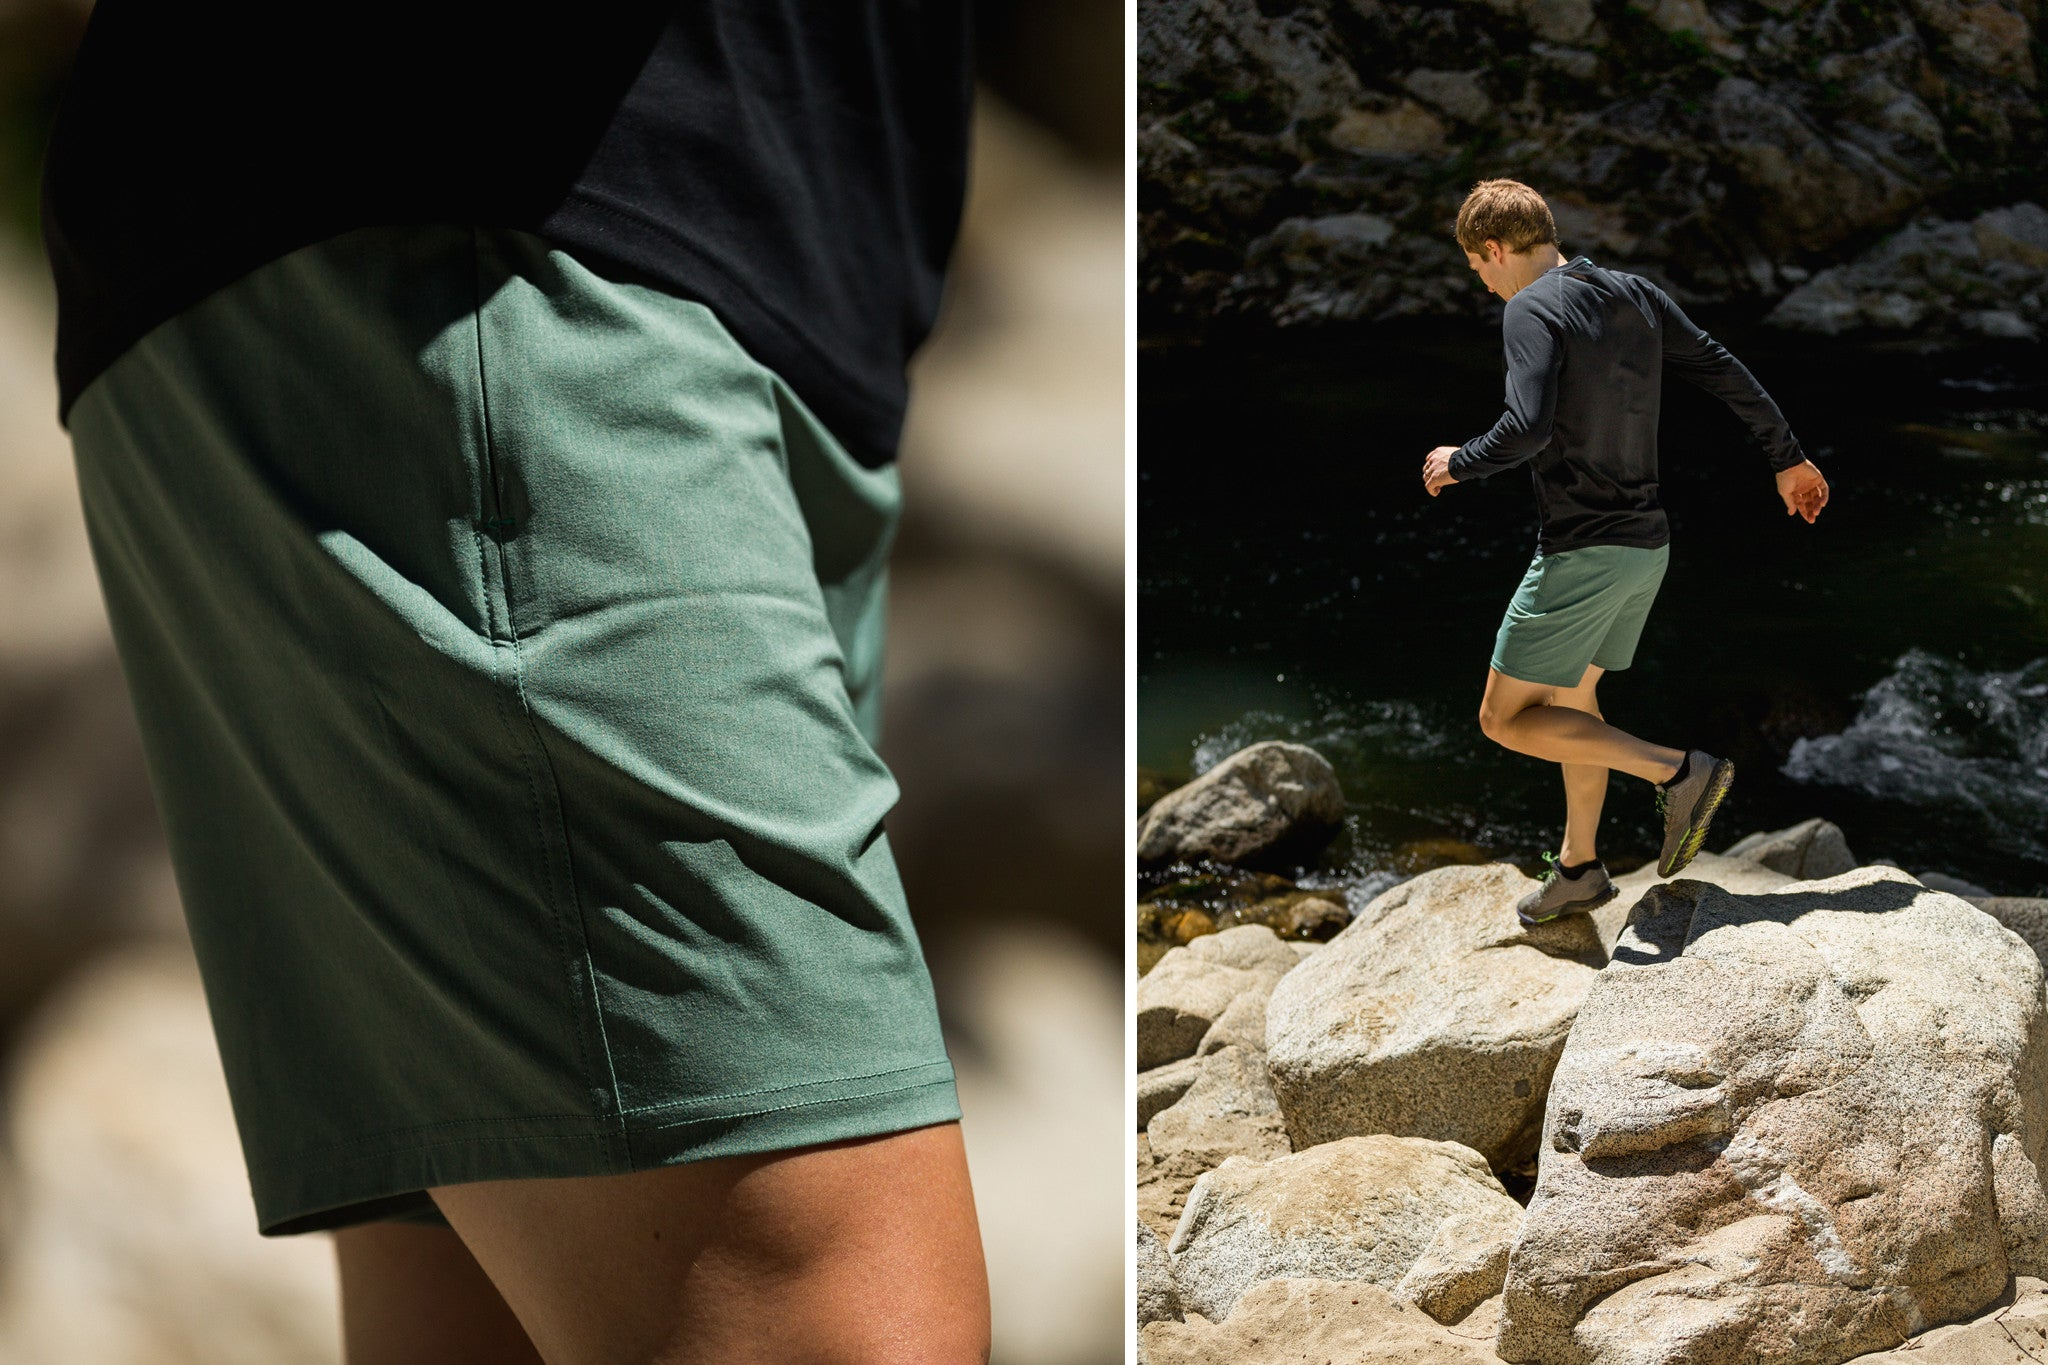 fe9f88380b439b Featured: Momentum Short in Heather Sea Pine, Momentum Long Sleeve in  Charcoal